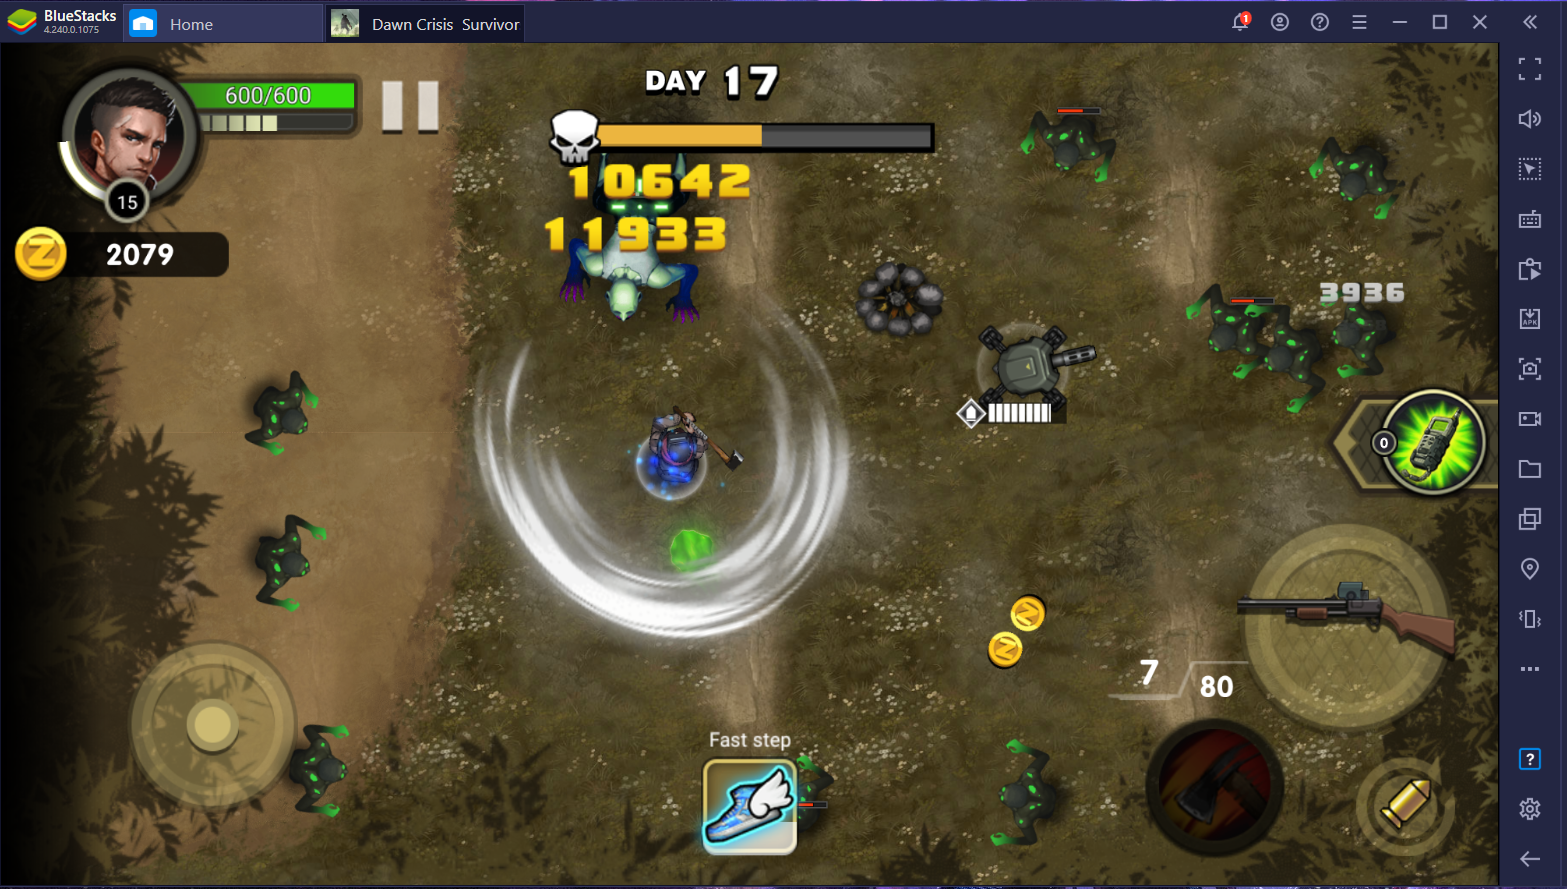 Become a survivor – How to Play Dawn Crisis on PC with BlueStacks